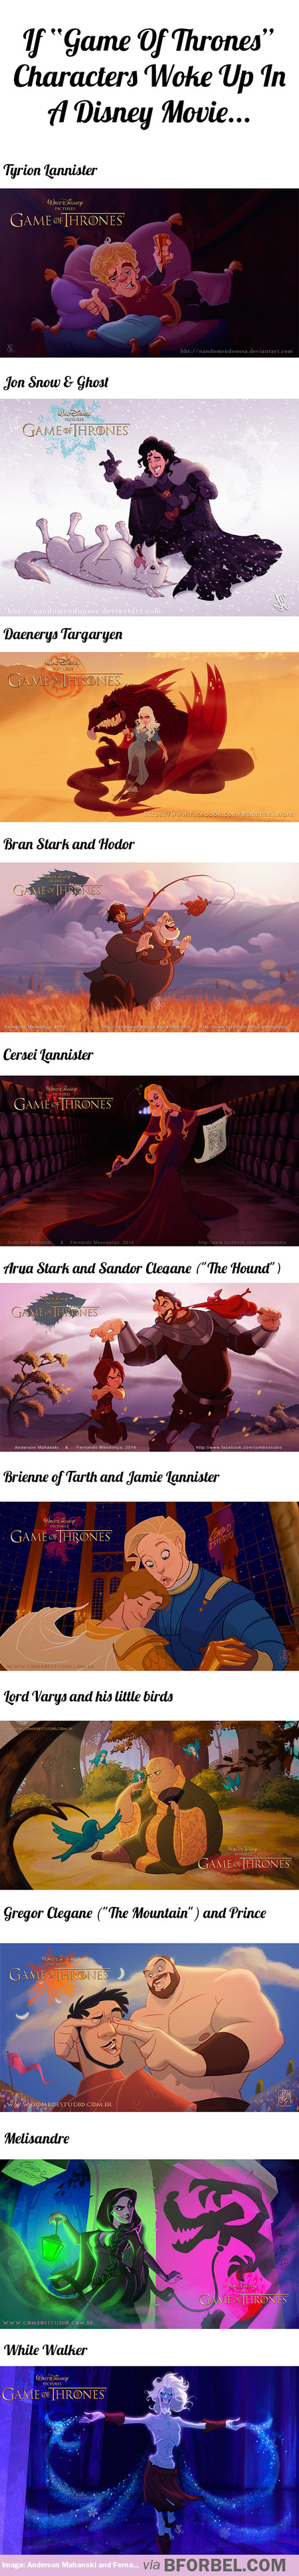 """If """"Game Of Thrones"""" characters woke up in a Disney Movie…"""